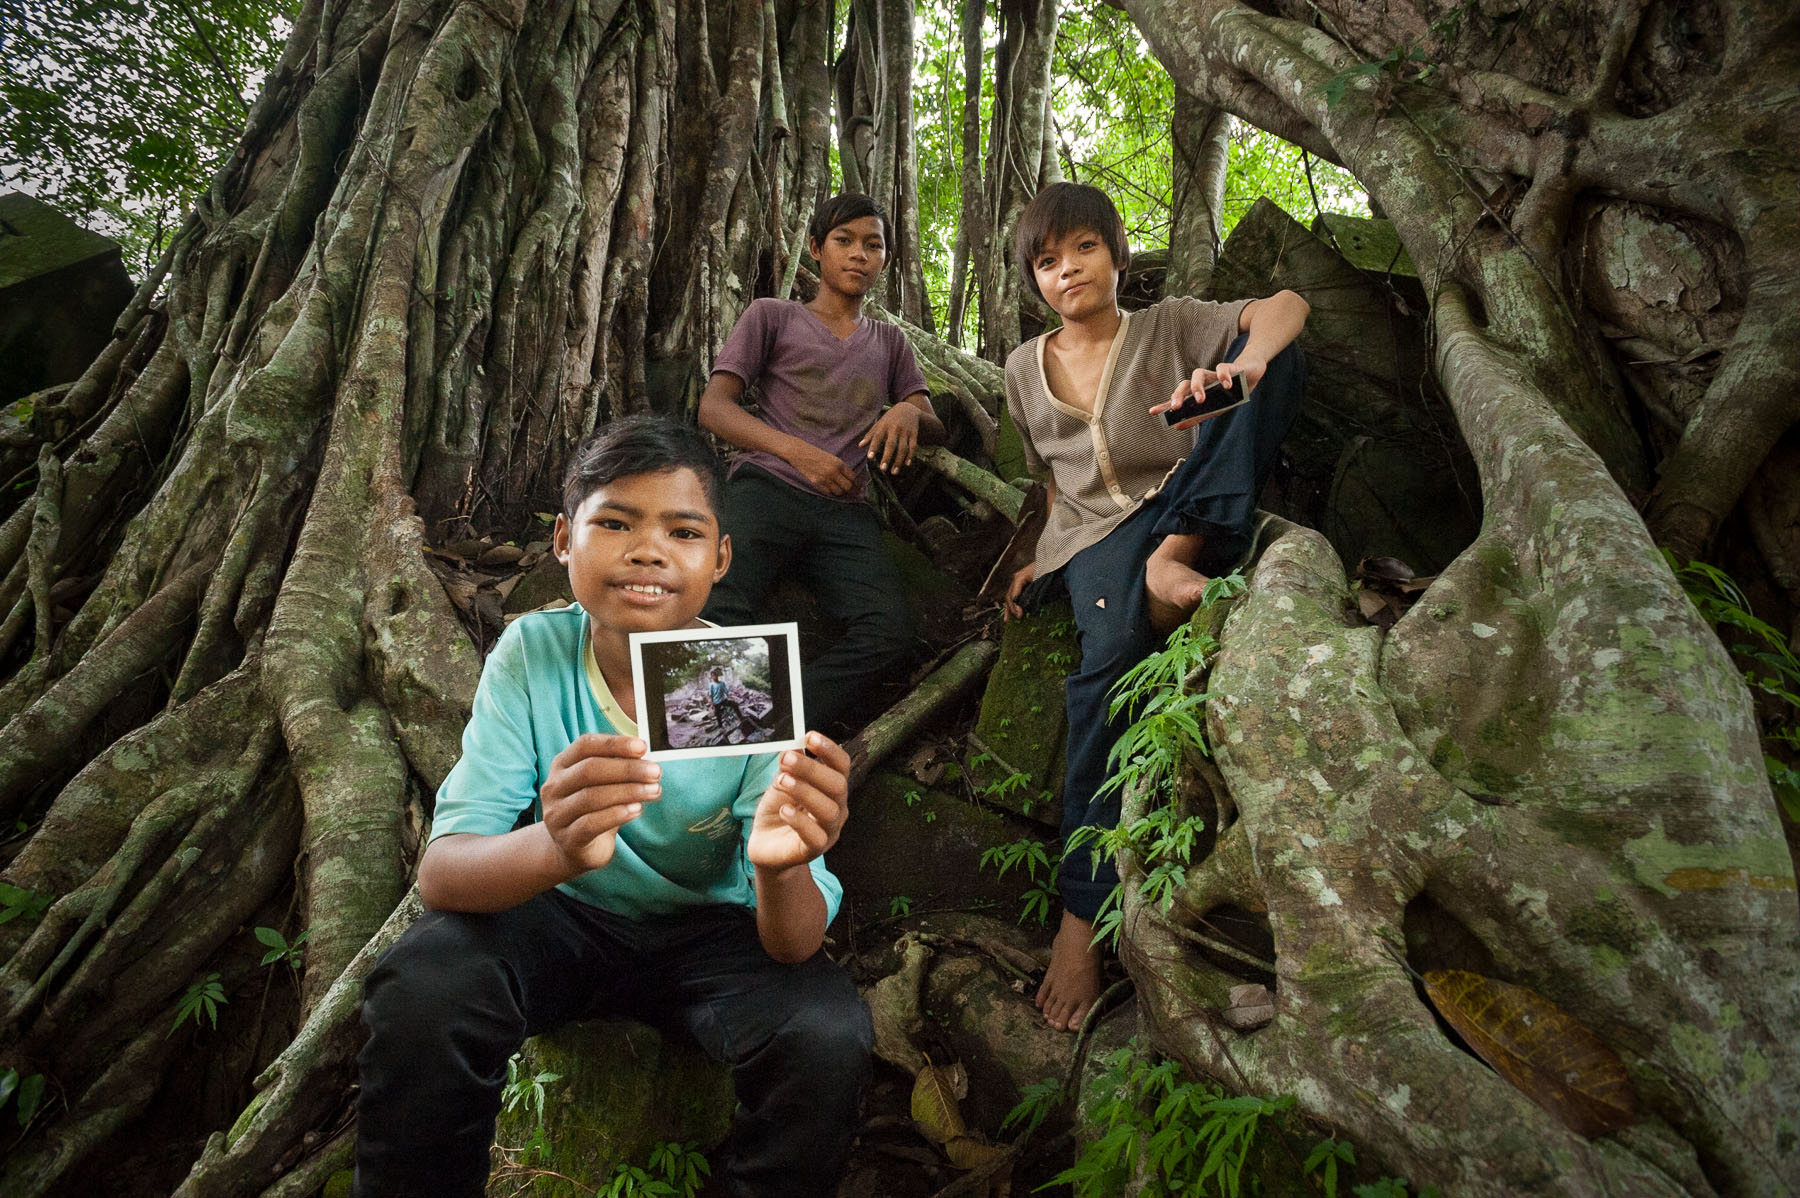 Cambodian kids with Polaroid pictures at Banteay Srey temple, Cambodia.